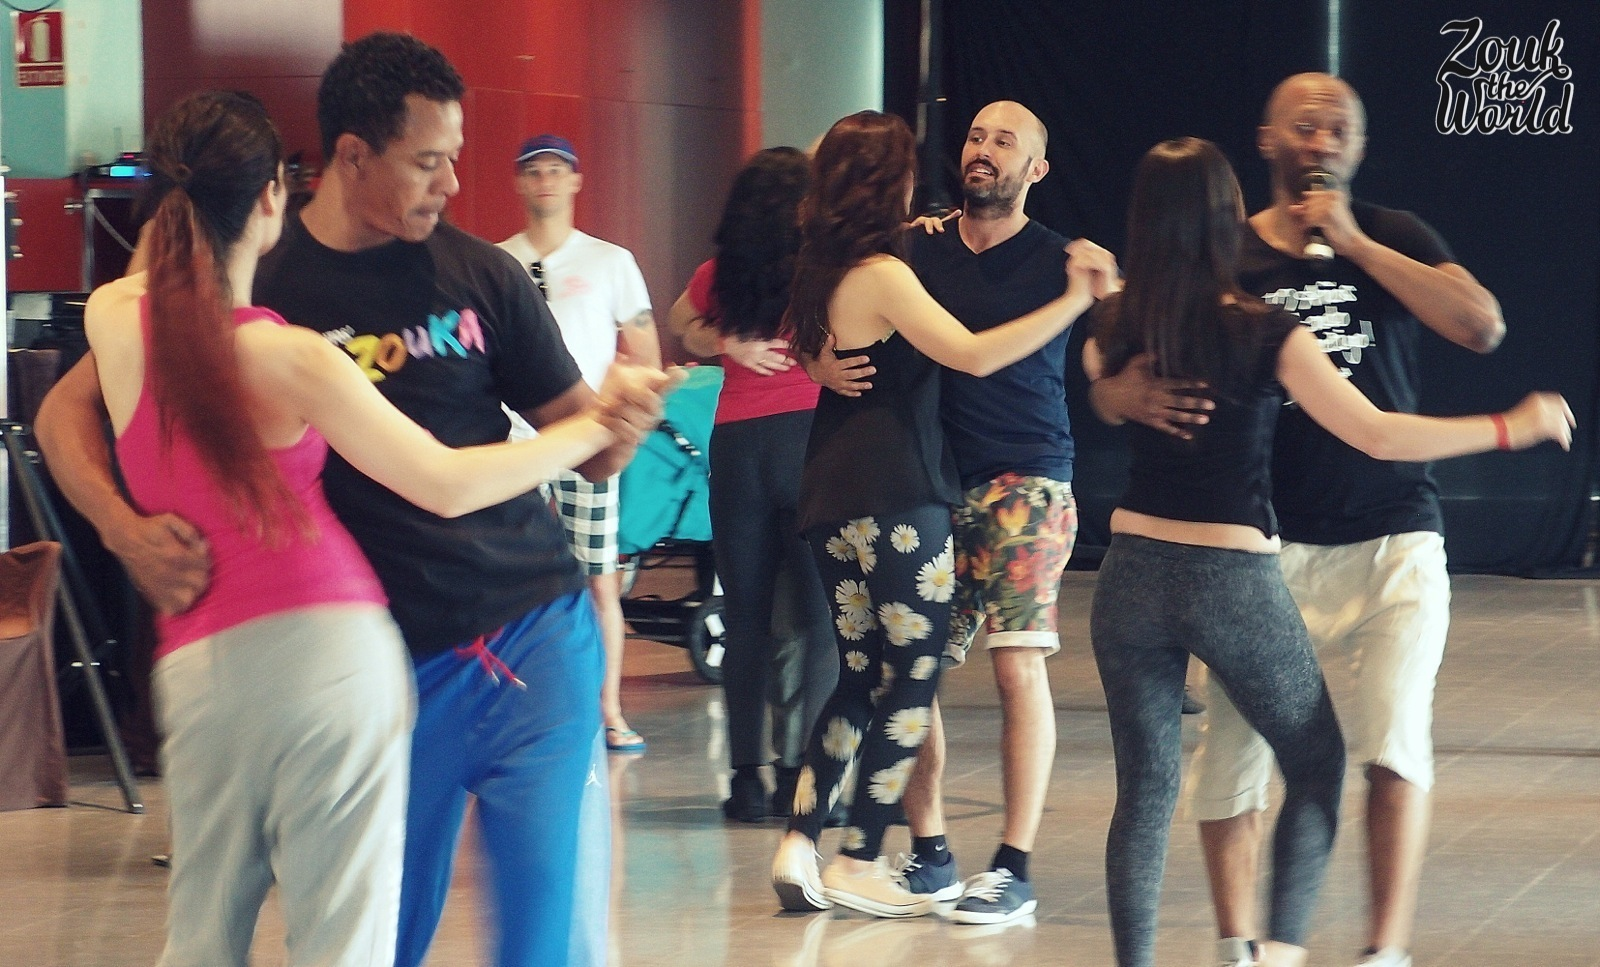 On Sunday morning severalteacher couples joined forces for one big workshop; this one was lambazouk with Olaya, Braz, Papagaio and Gilson.